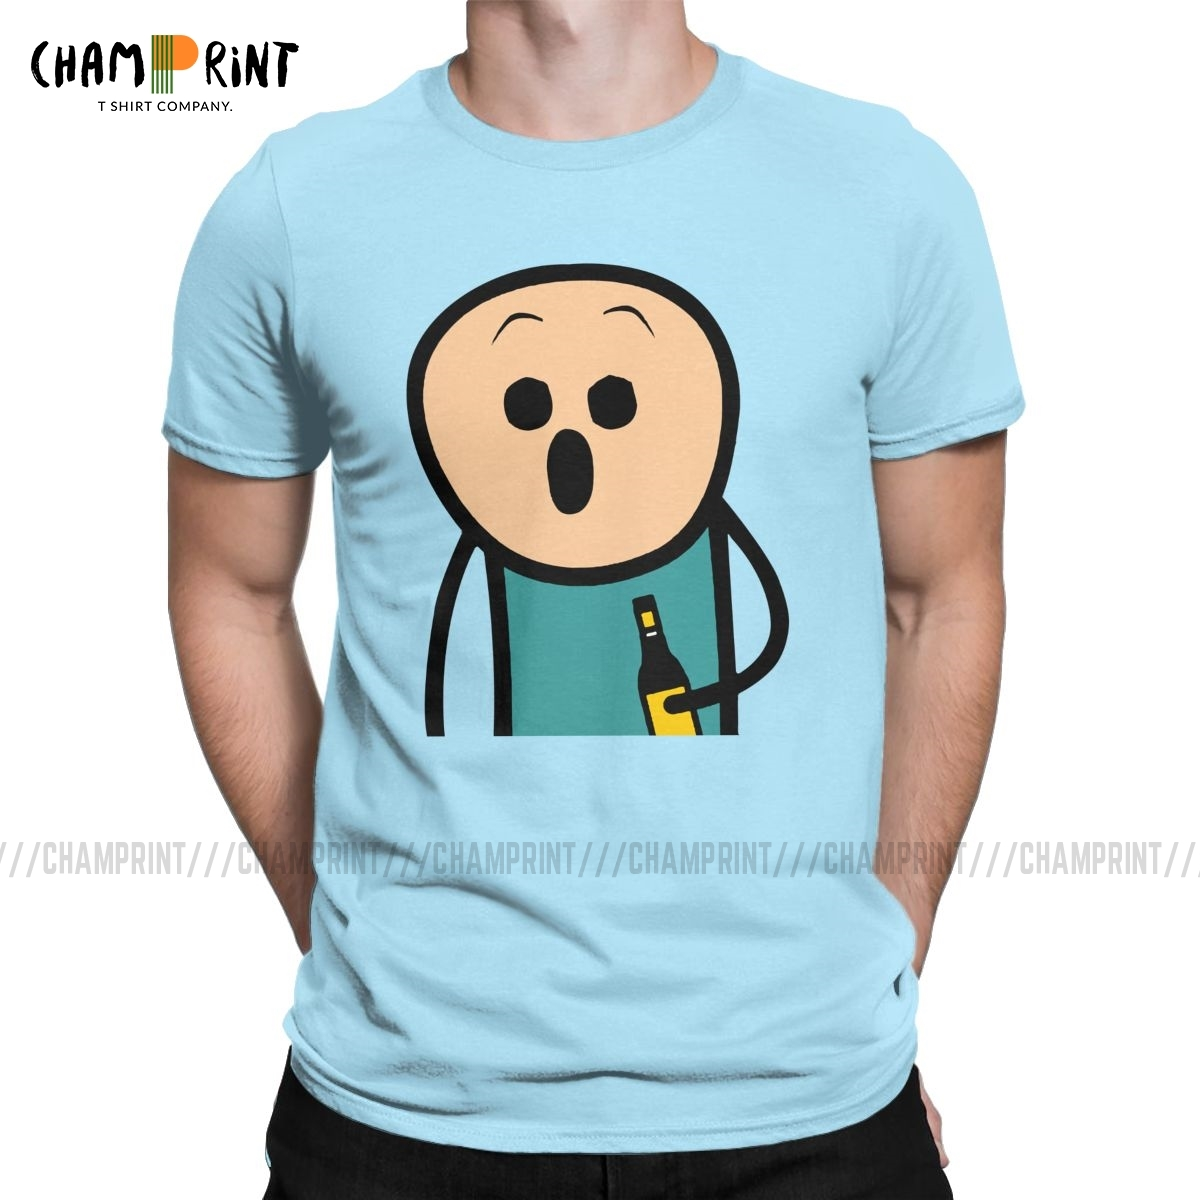 Men Joy Become Shock And Awe T Shirts The Cyanide & Happiness Show 100% Cotton Clothing Fashion Tee Shirt New Arrival T-Shirt image